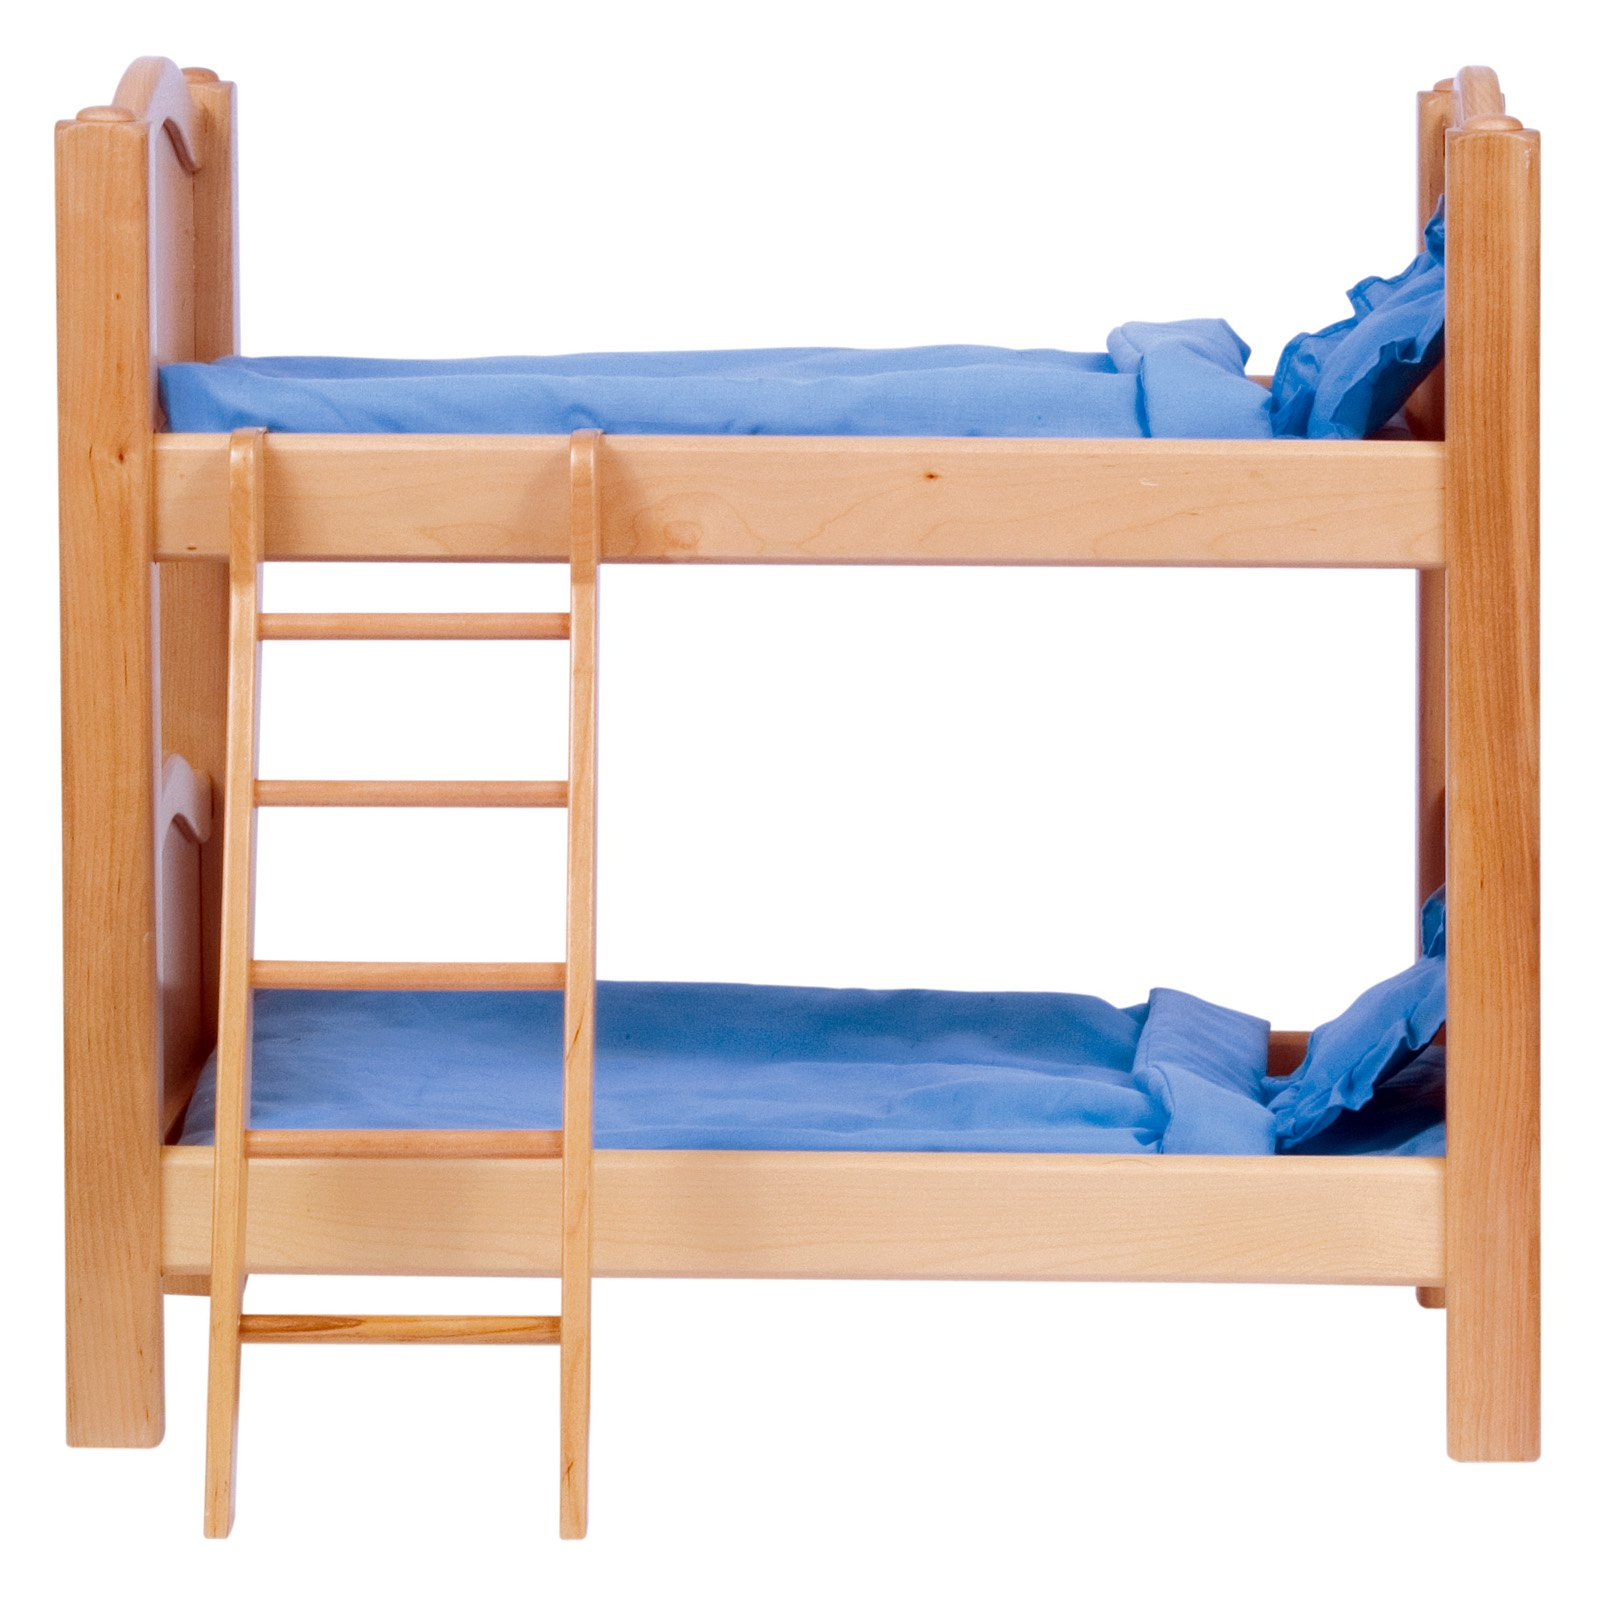 Bunk bed clipart 5 » Clipart Station.